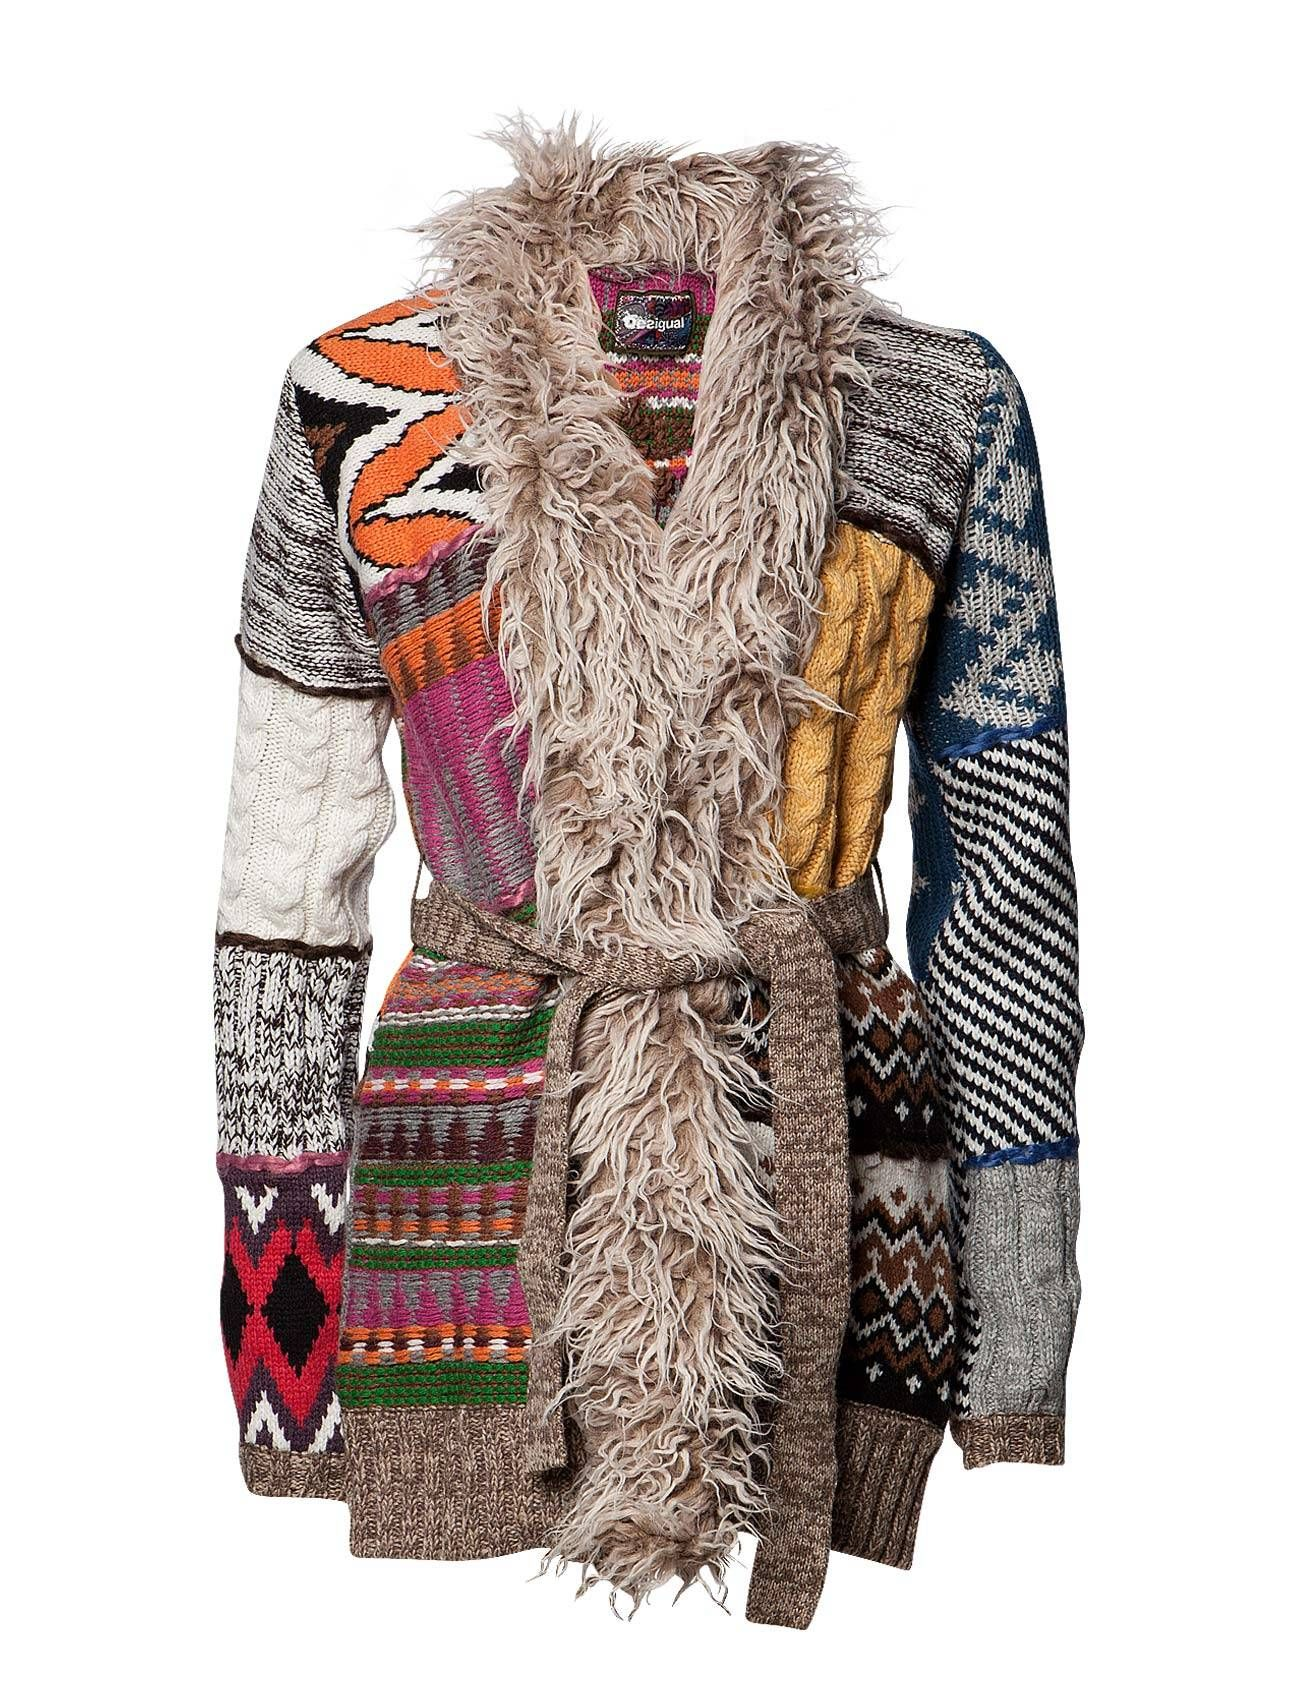 Desigual -idea for recycling old sweaters.